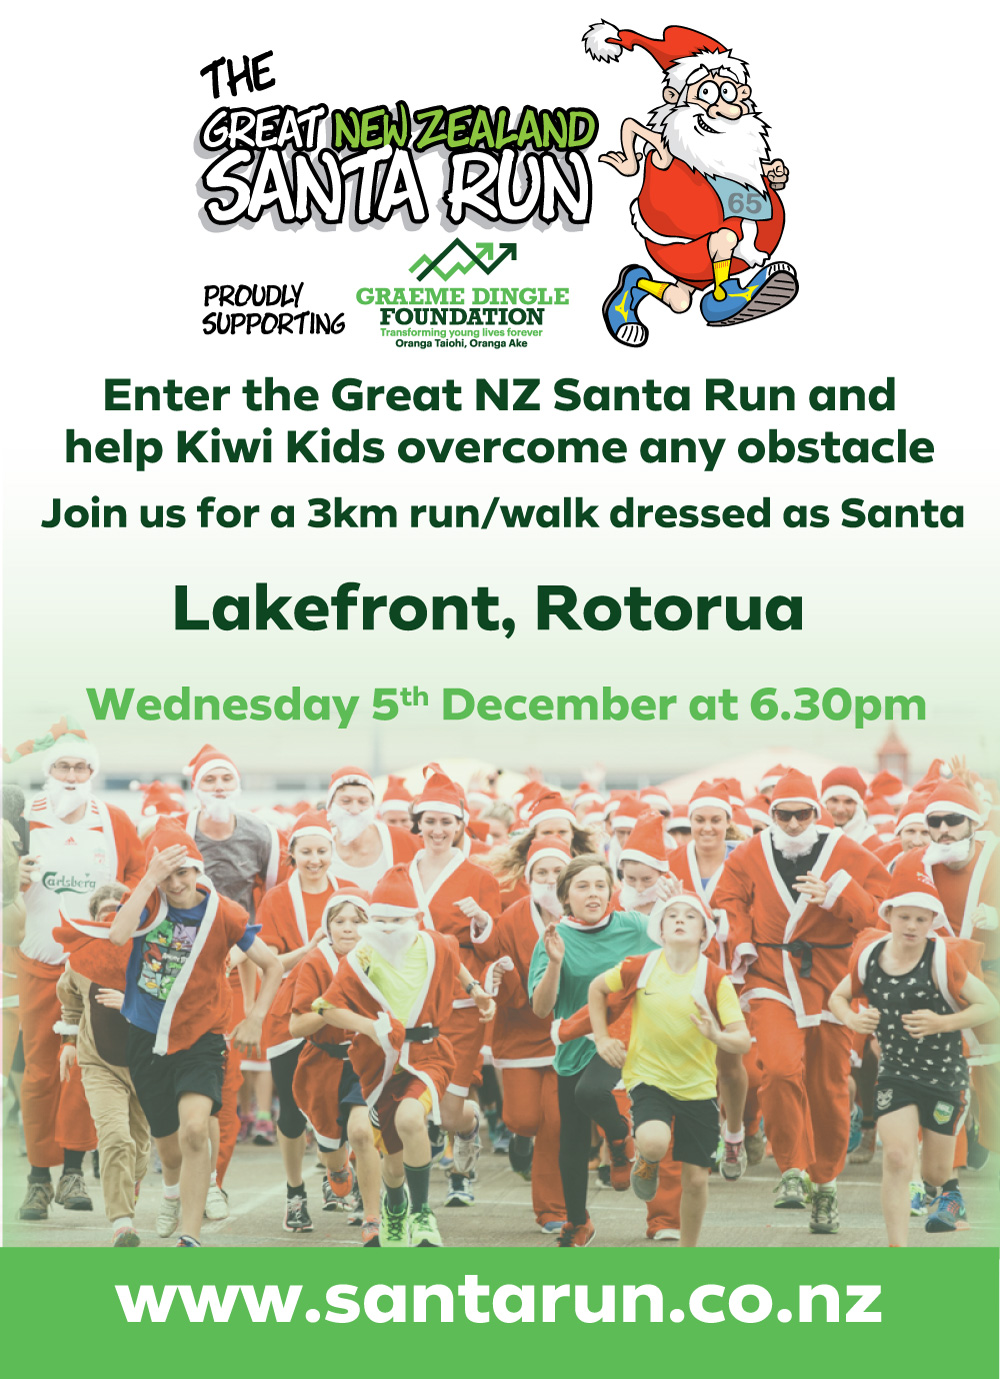 The Great NZ Santa Run